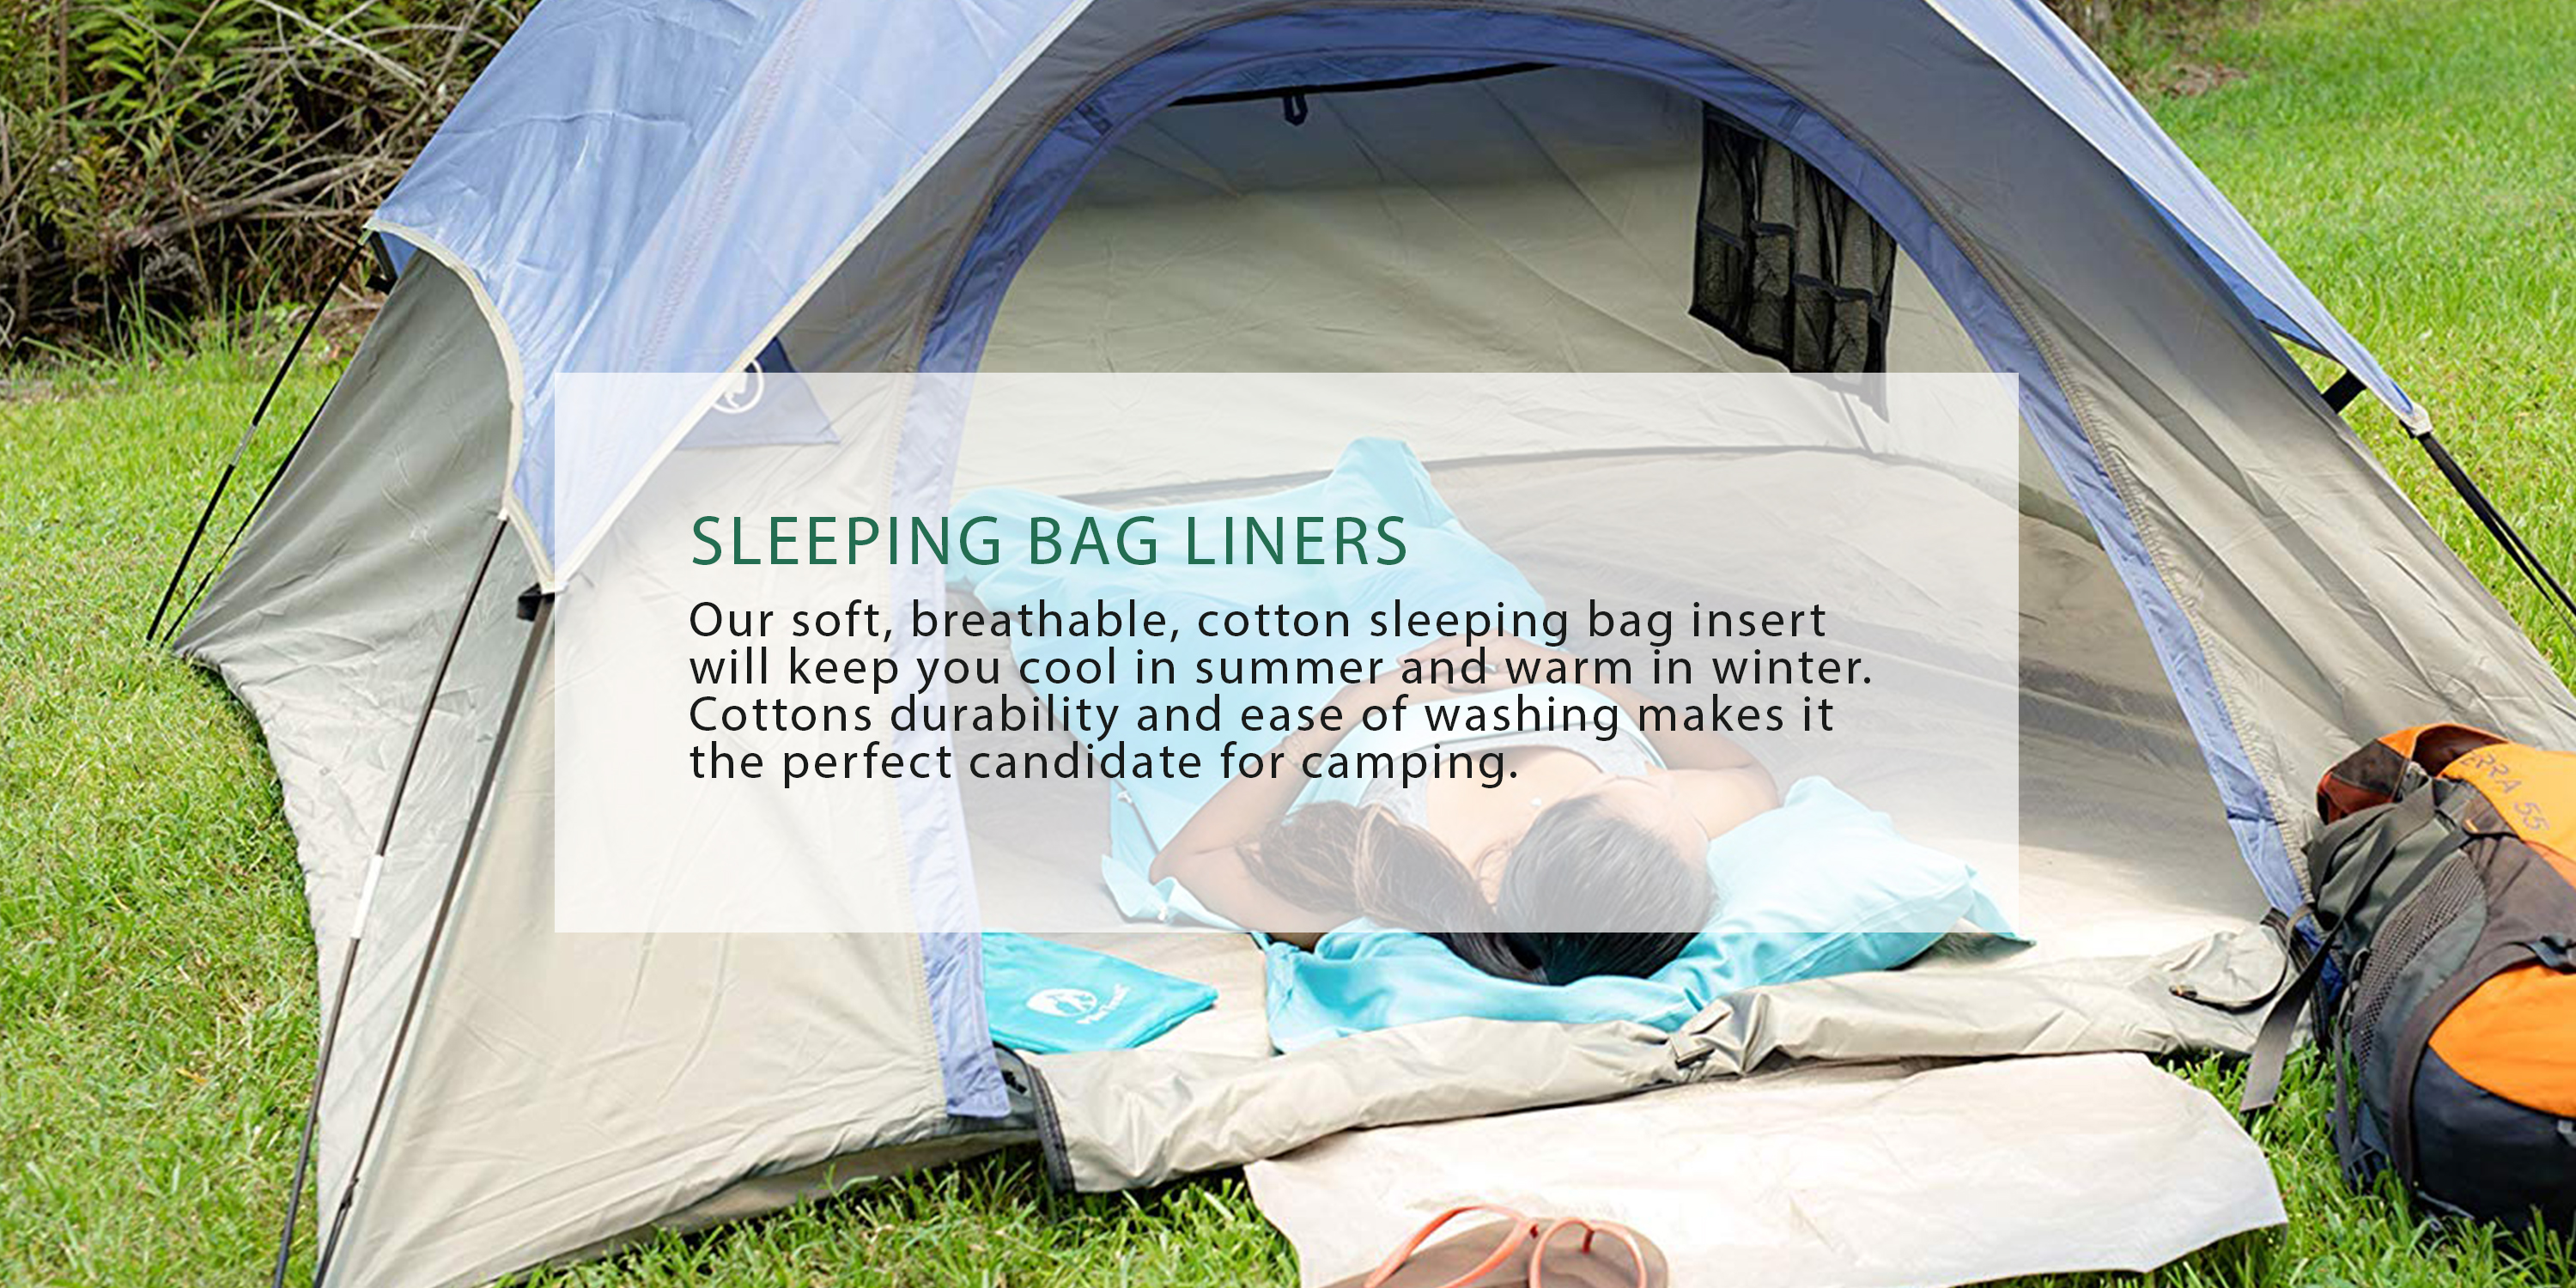 Pike Trail Sleeping Bag Liner Travel and Camping Sheet Lightweight and Compact Insert with Full Length Zipper and Guarantee